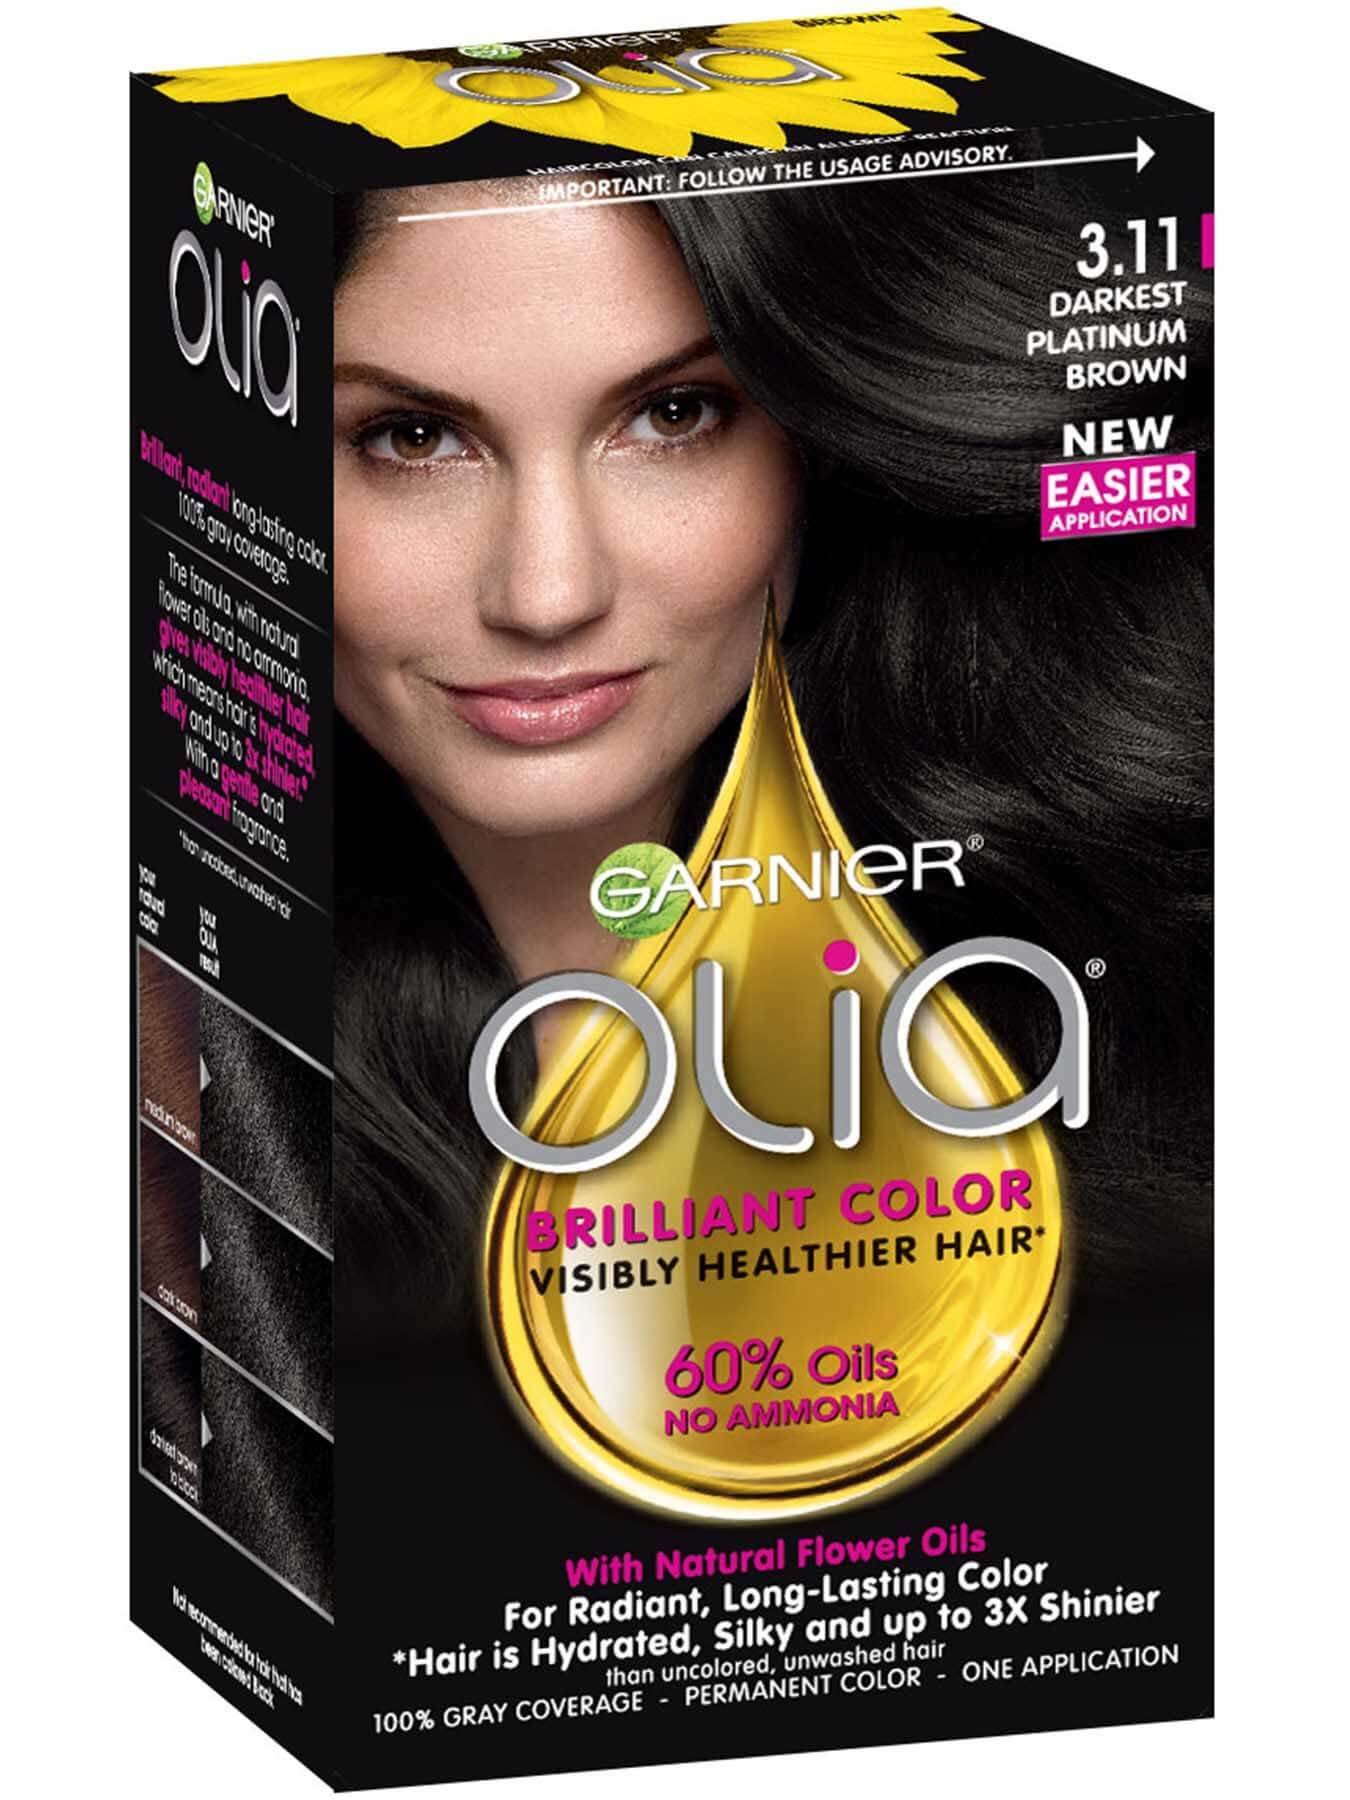 Garnier Olia hair Color 3.11 - Product for Darkest Platinum Brown for radiant, long-lasting hair color